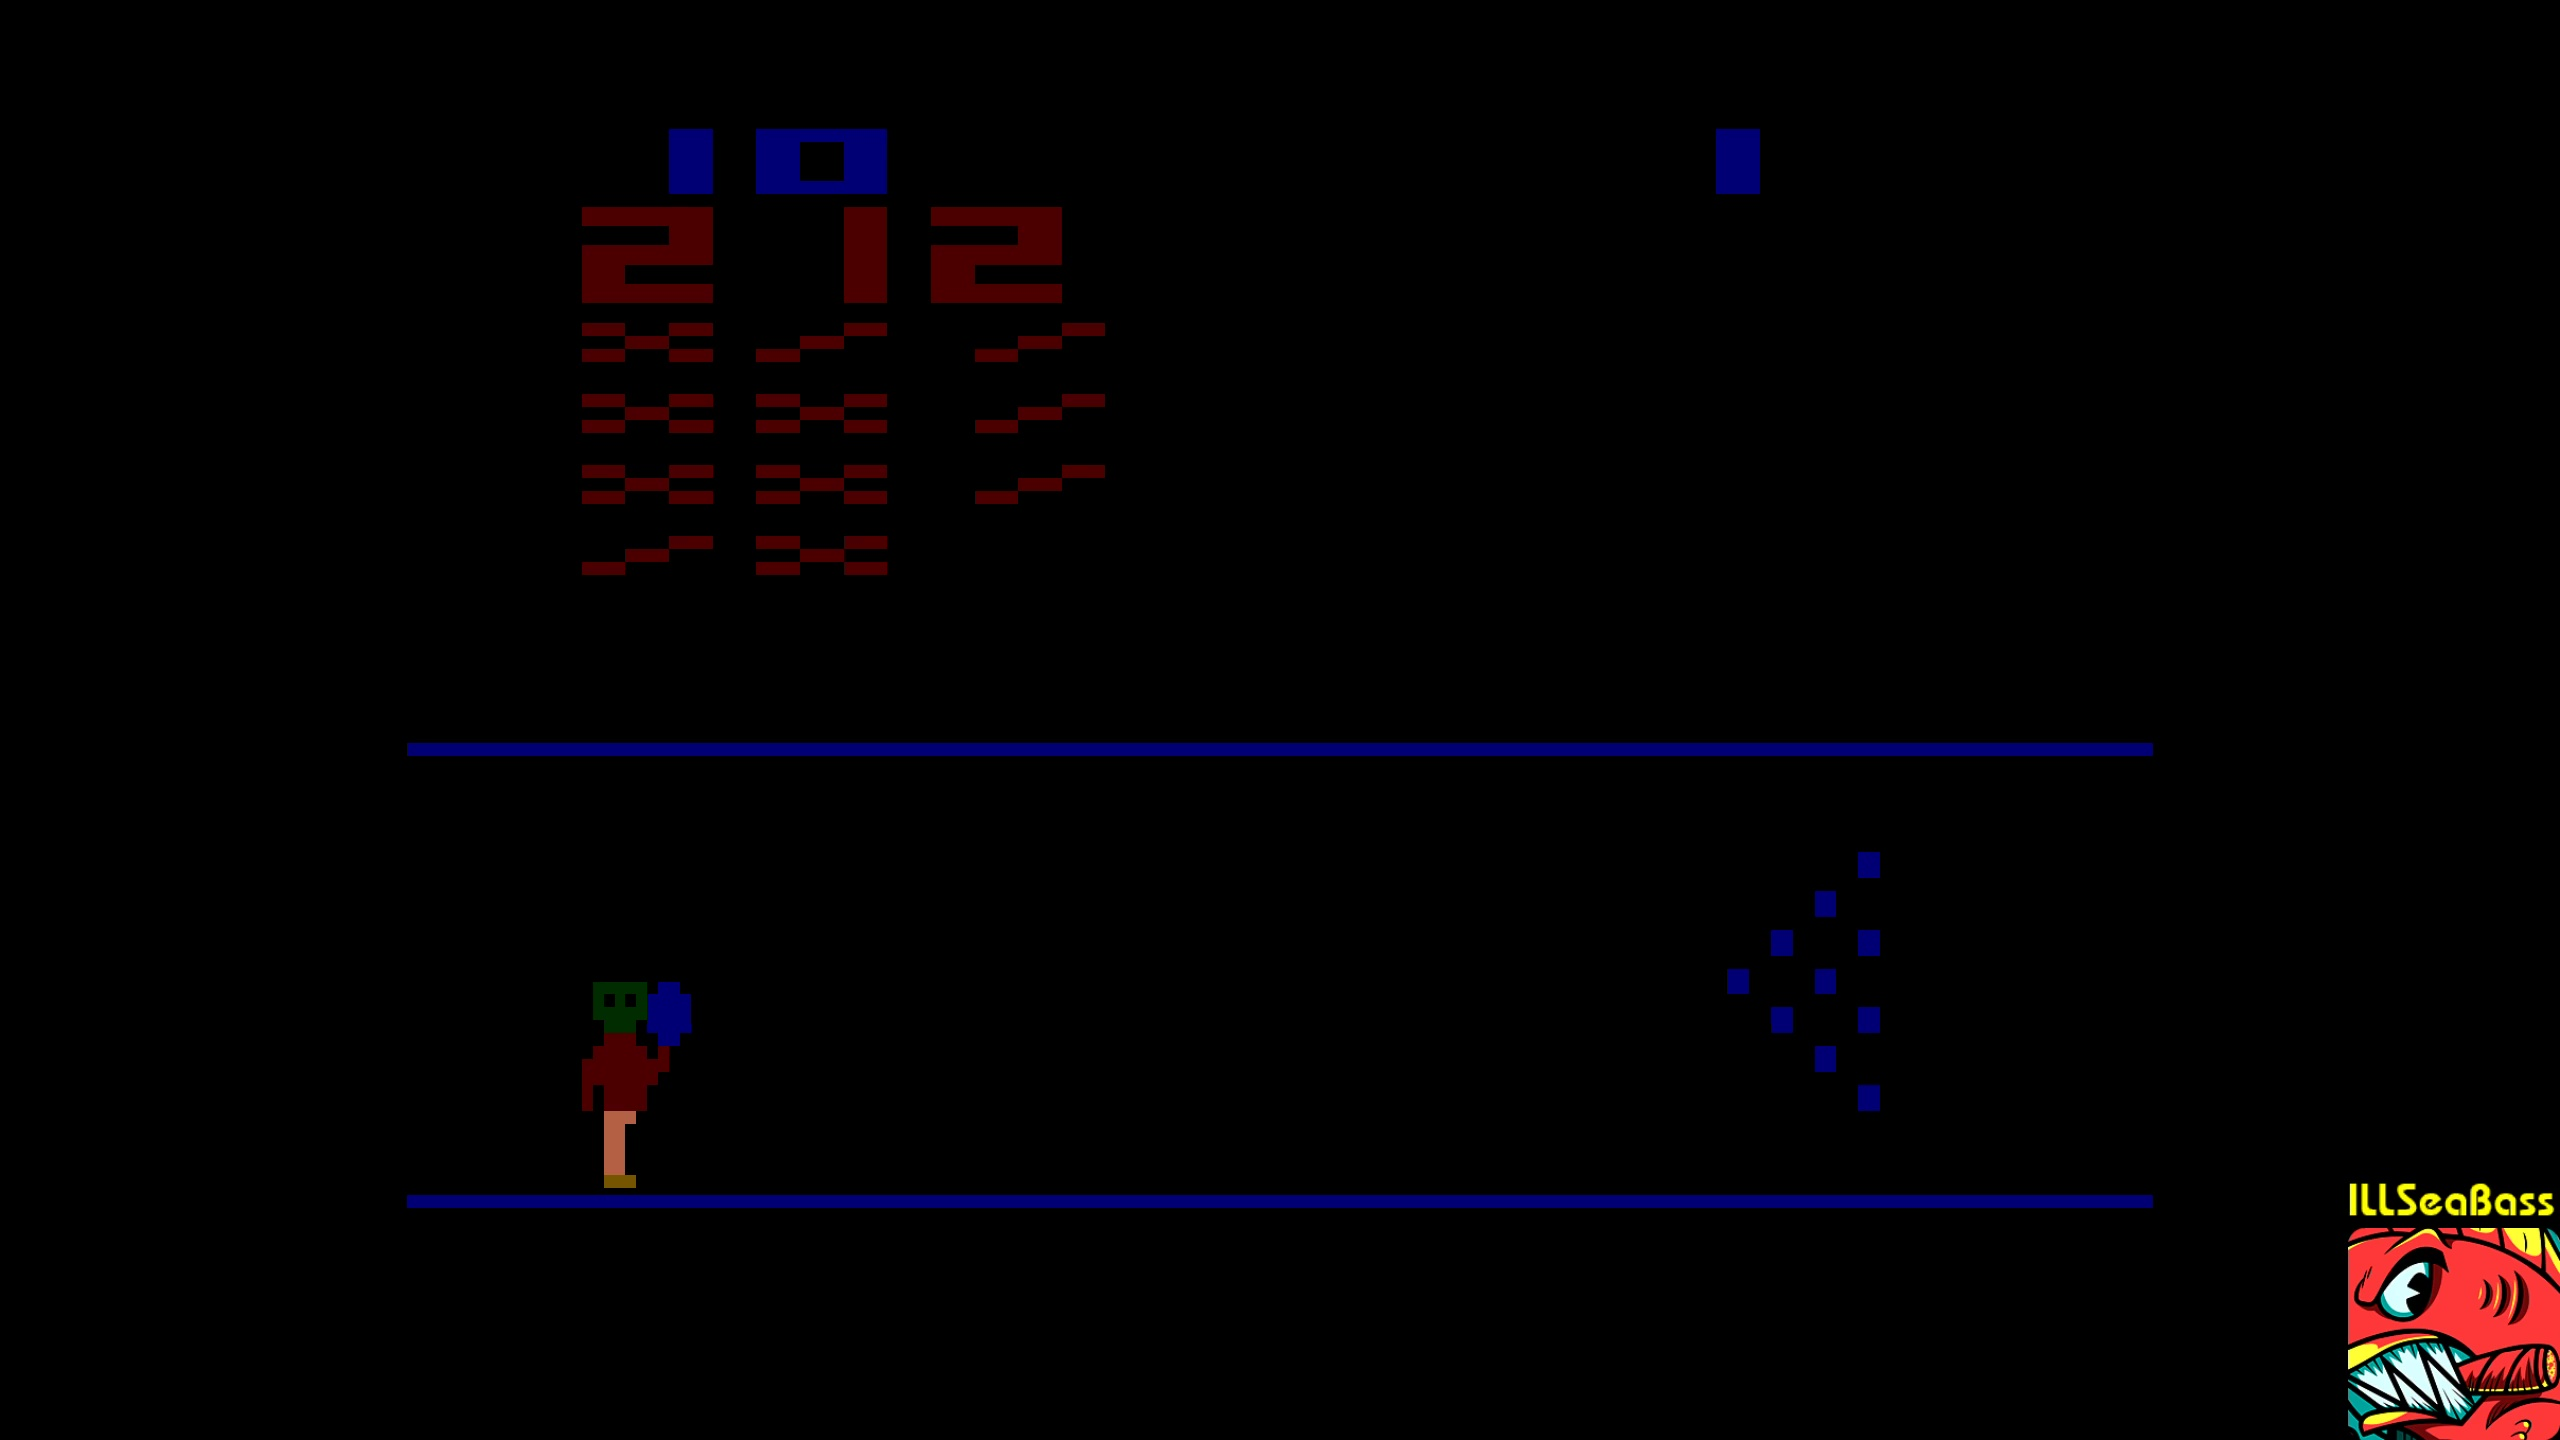 ILLSeaBass: Cosmic Bowling (Atari 2600 Emulated Novice/B Mode) 212 points on 2018-02-19 16:55:44